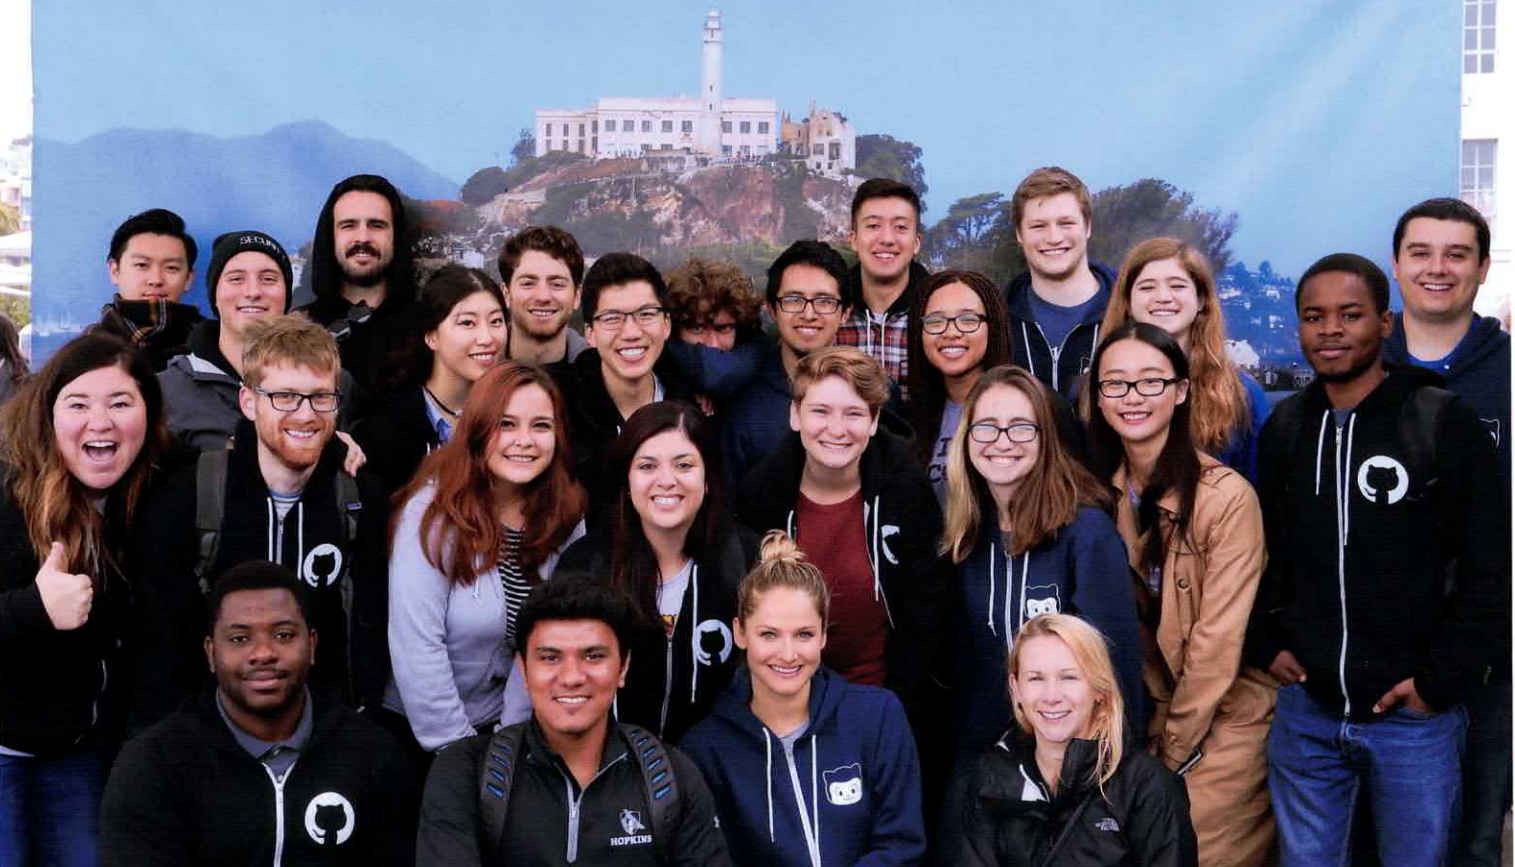 2017 GitHub Intern Group Photo